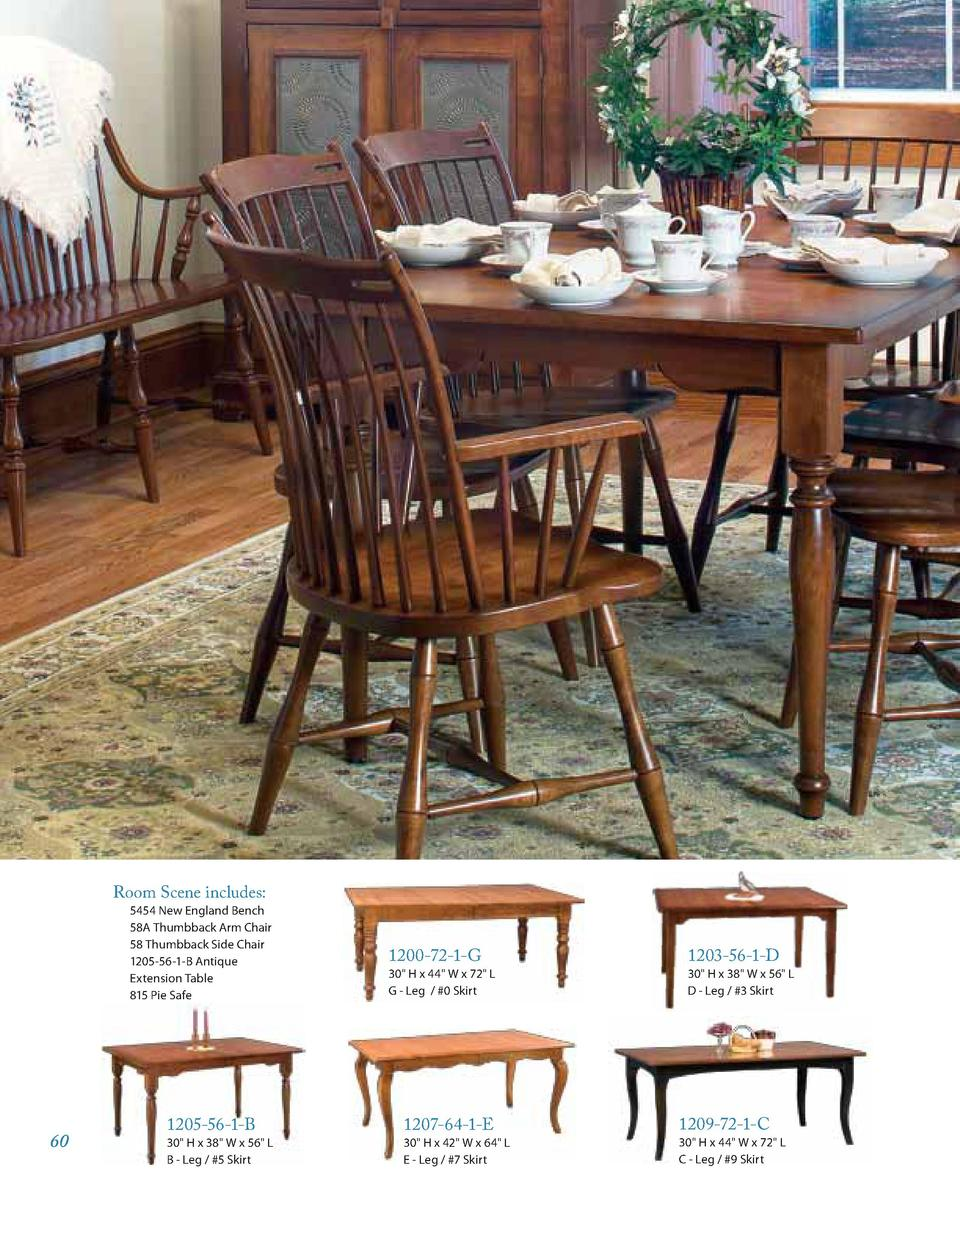 Miraculous American Heirloom Furniture Simplebooklet Com Ocoug Best Dining Table And Chair Ideas Images Ocougorg